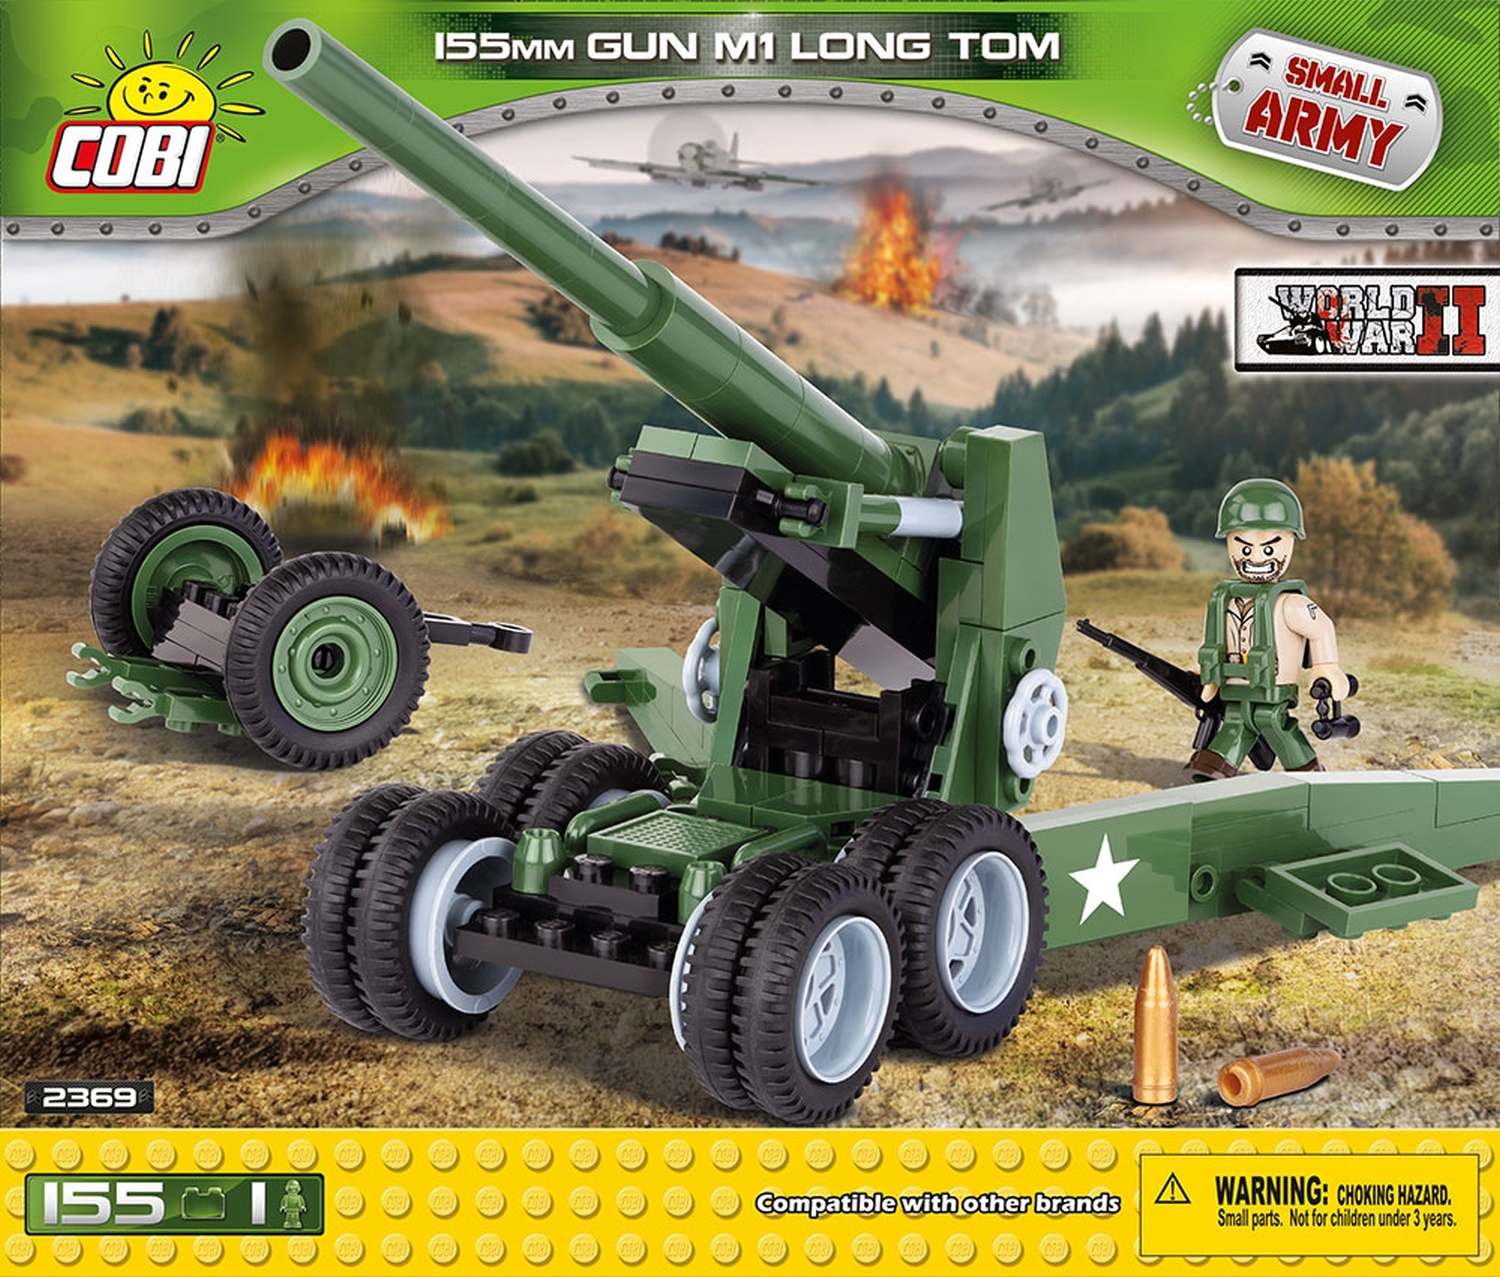 2369_Cobi_2.WK_M1_155mm_Kanone_Long_Tom_www.super-bricks.de_9